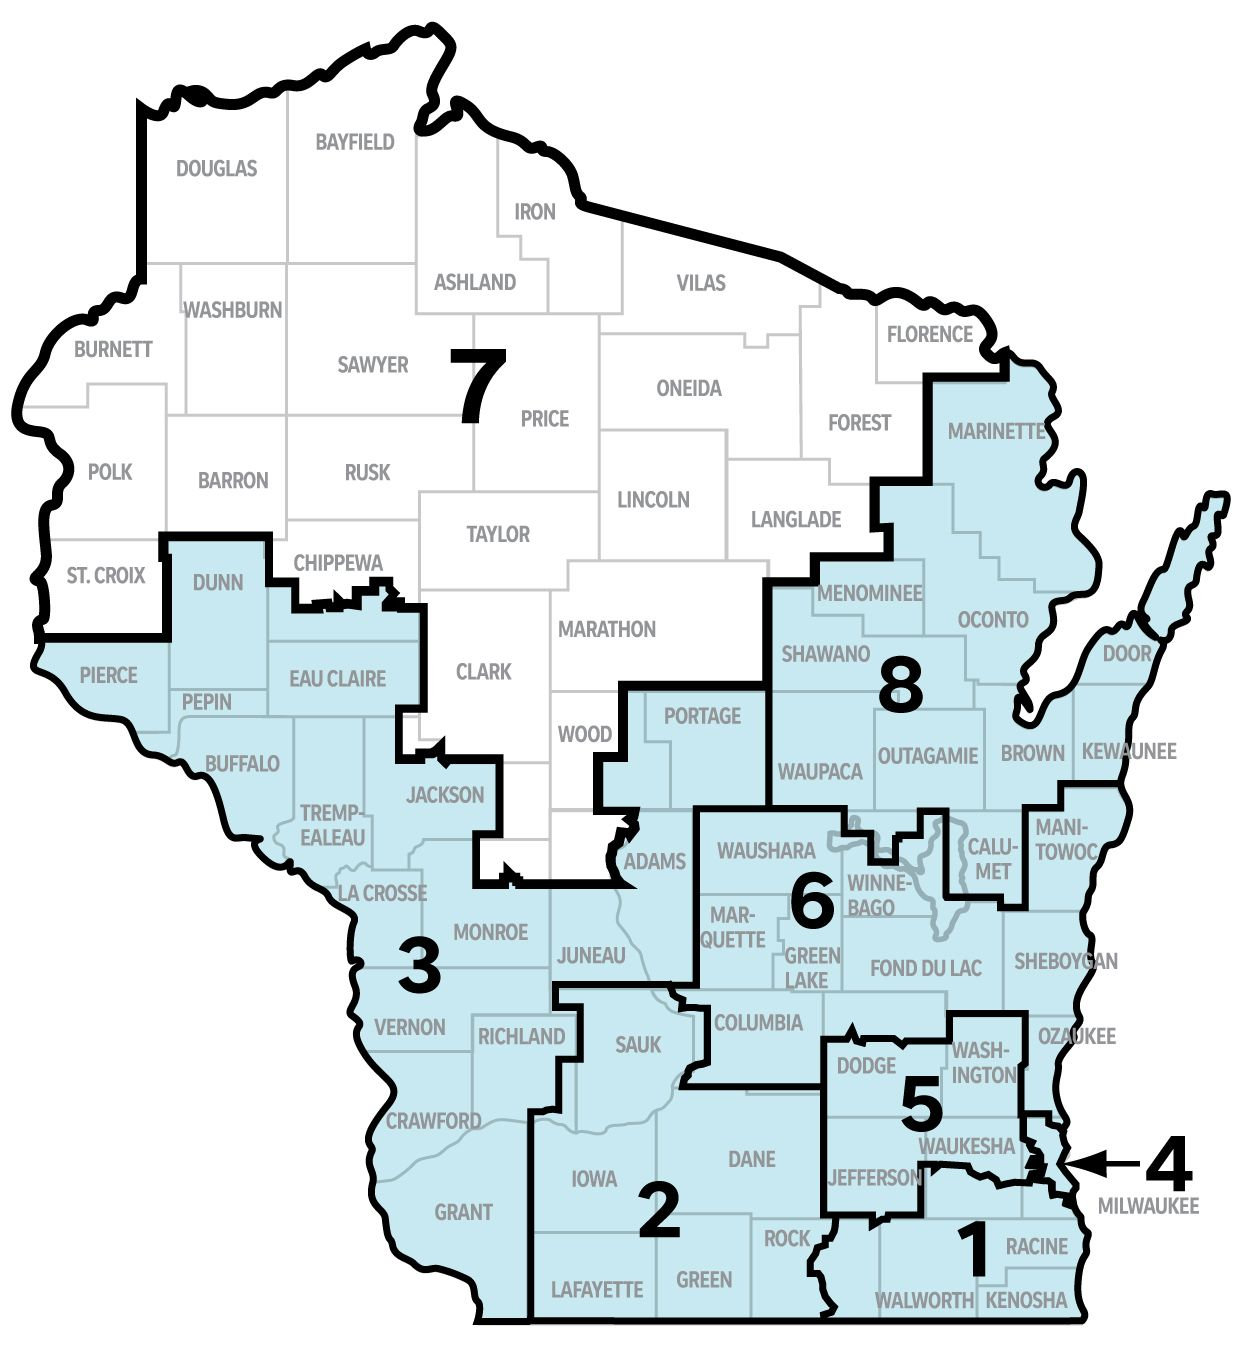 The photo is an outline of Wisconsin, broken up into the 7 Congressional Districts.